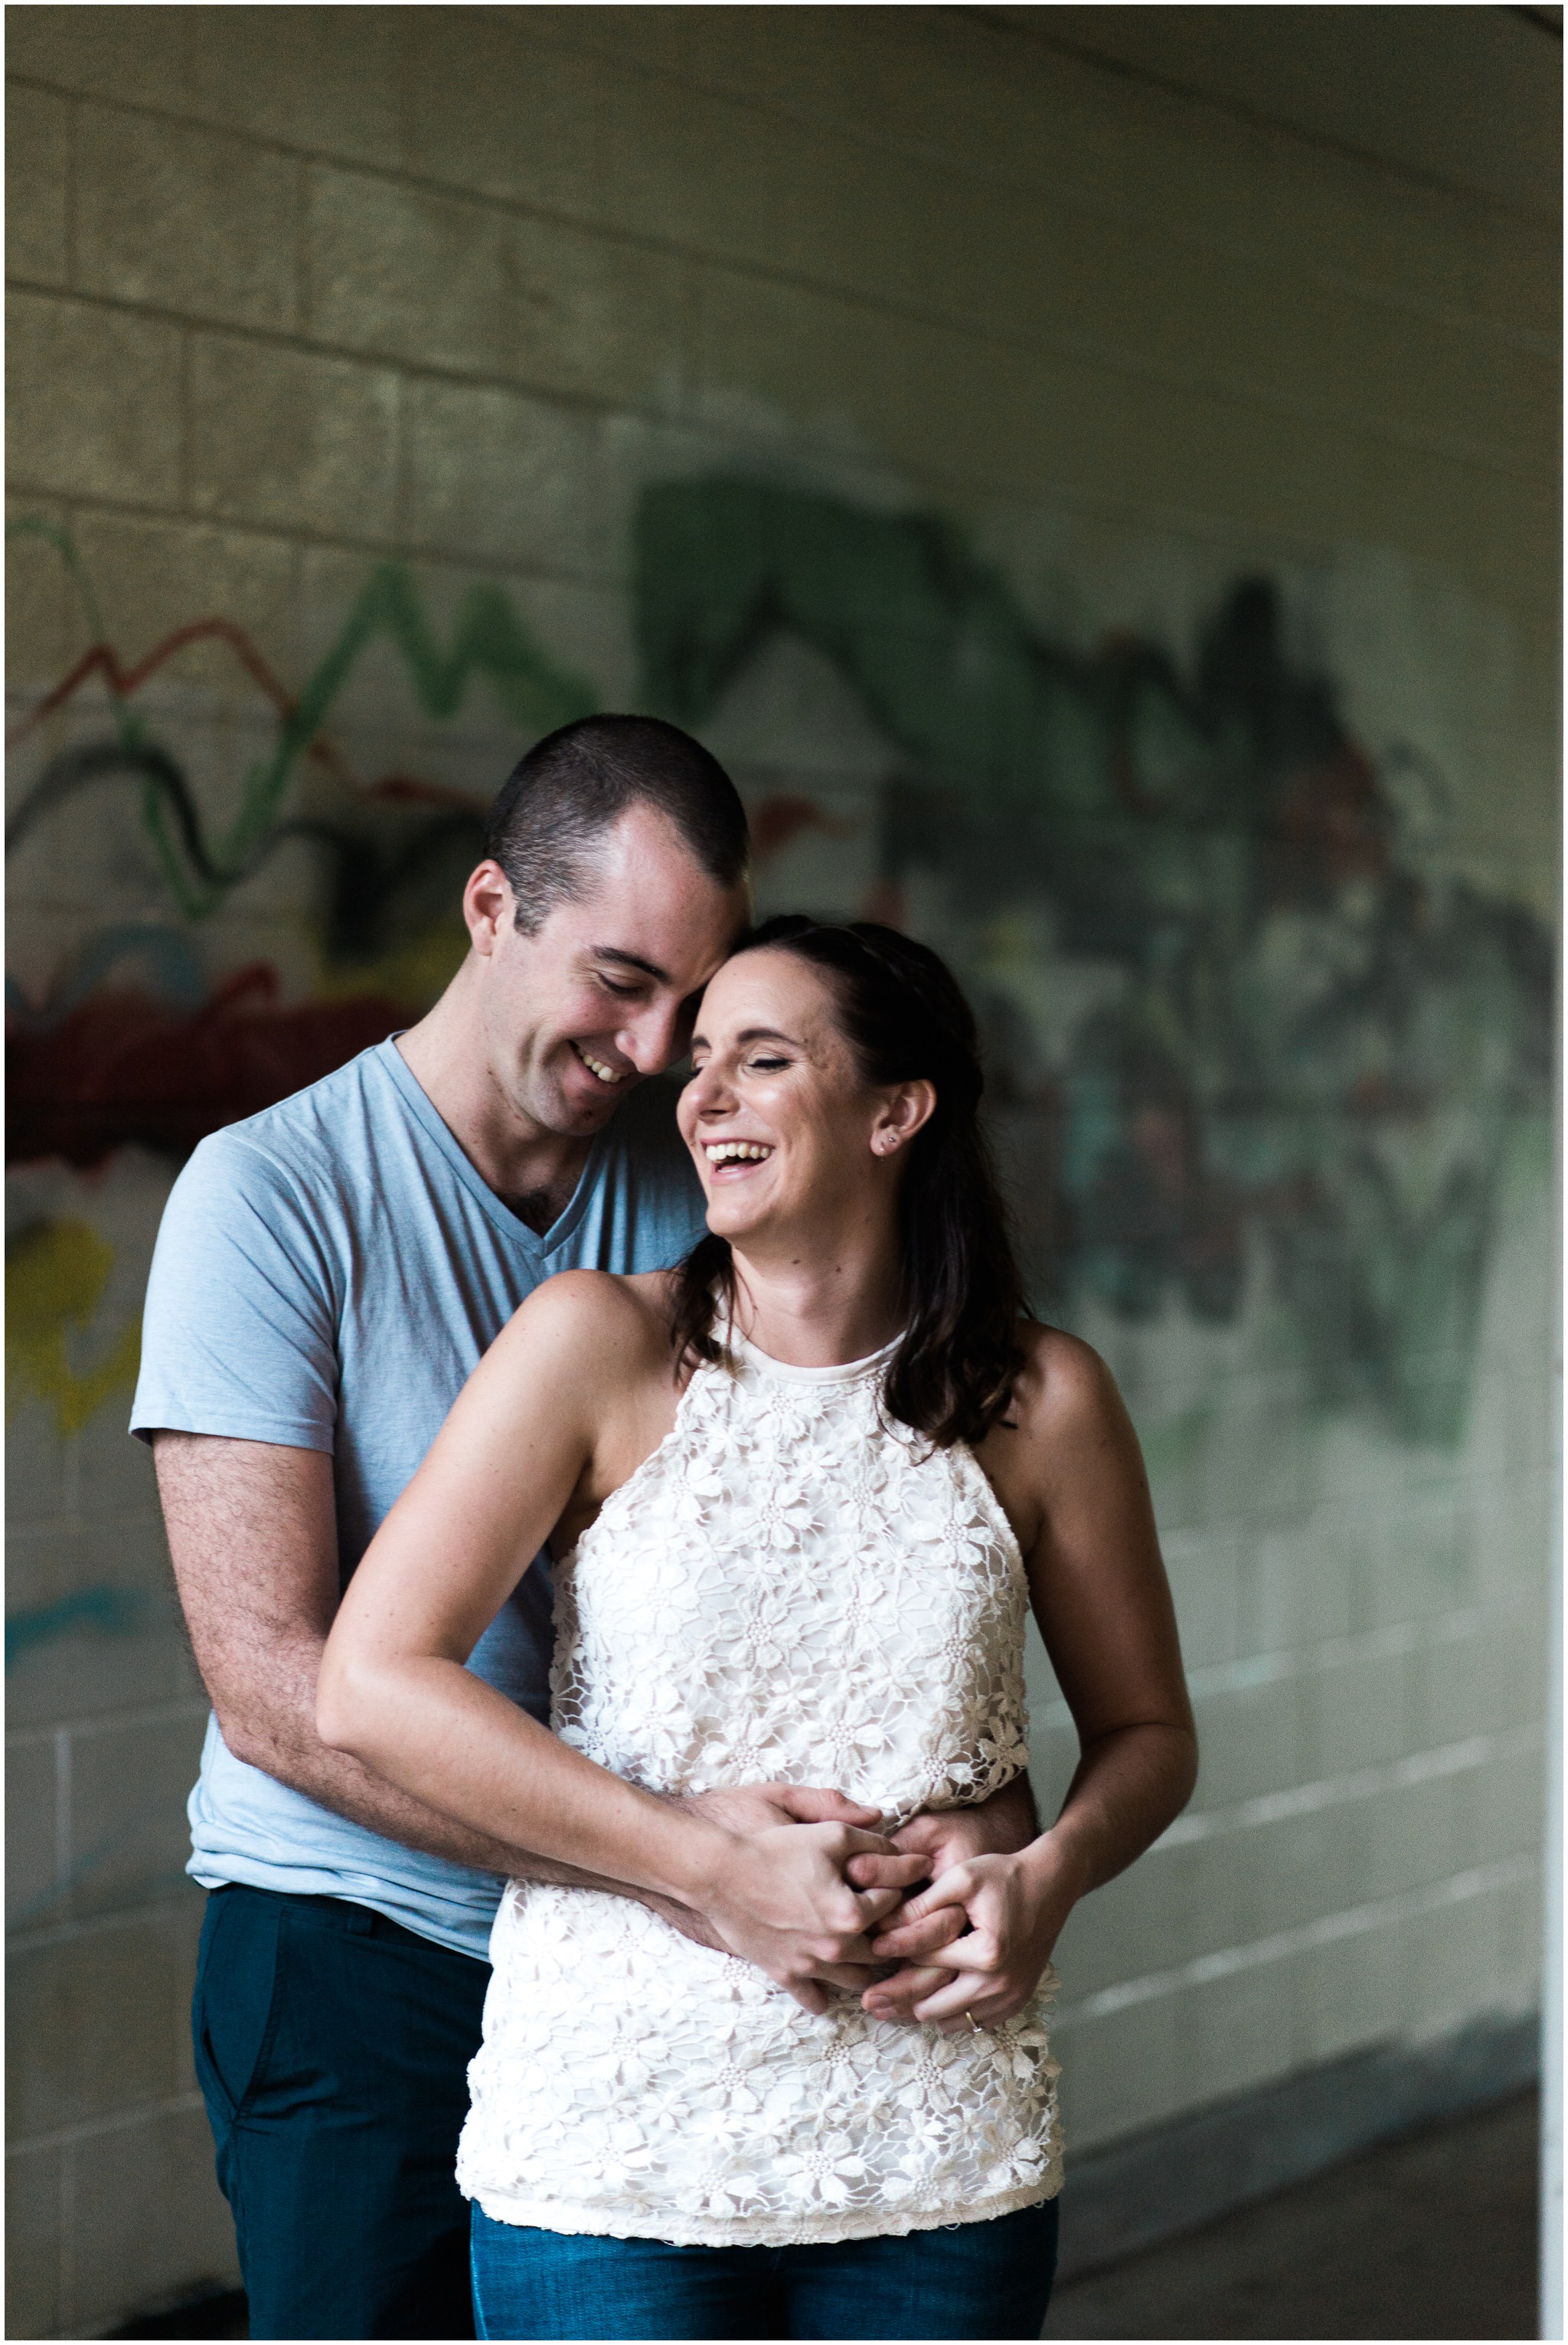 Brisbane-Engagement-Shoot-School11.jpg